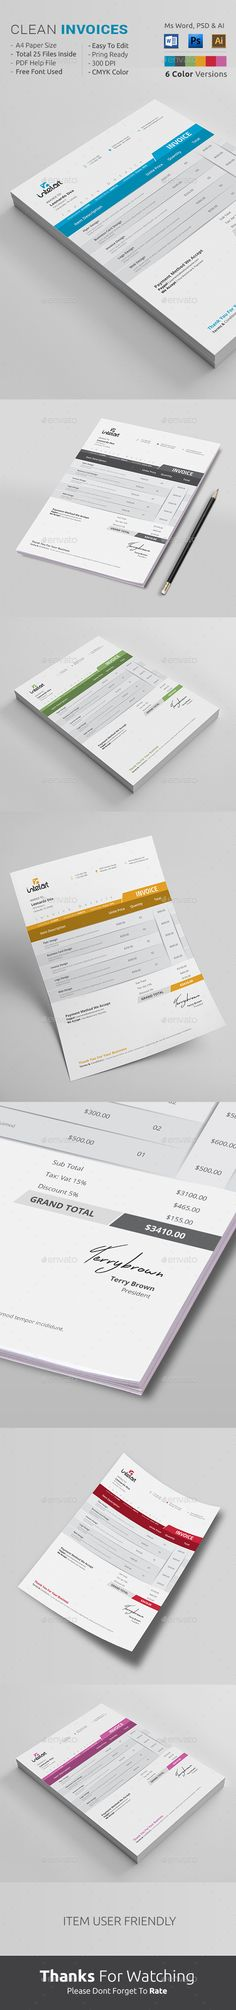 20 Creative Invoice \ Proposal Template Designs Template - proposal template in word